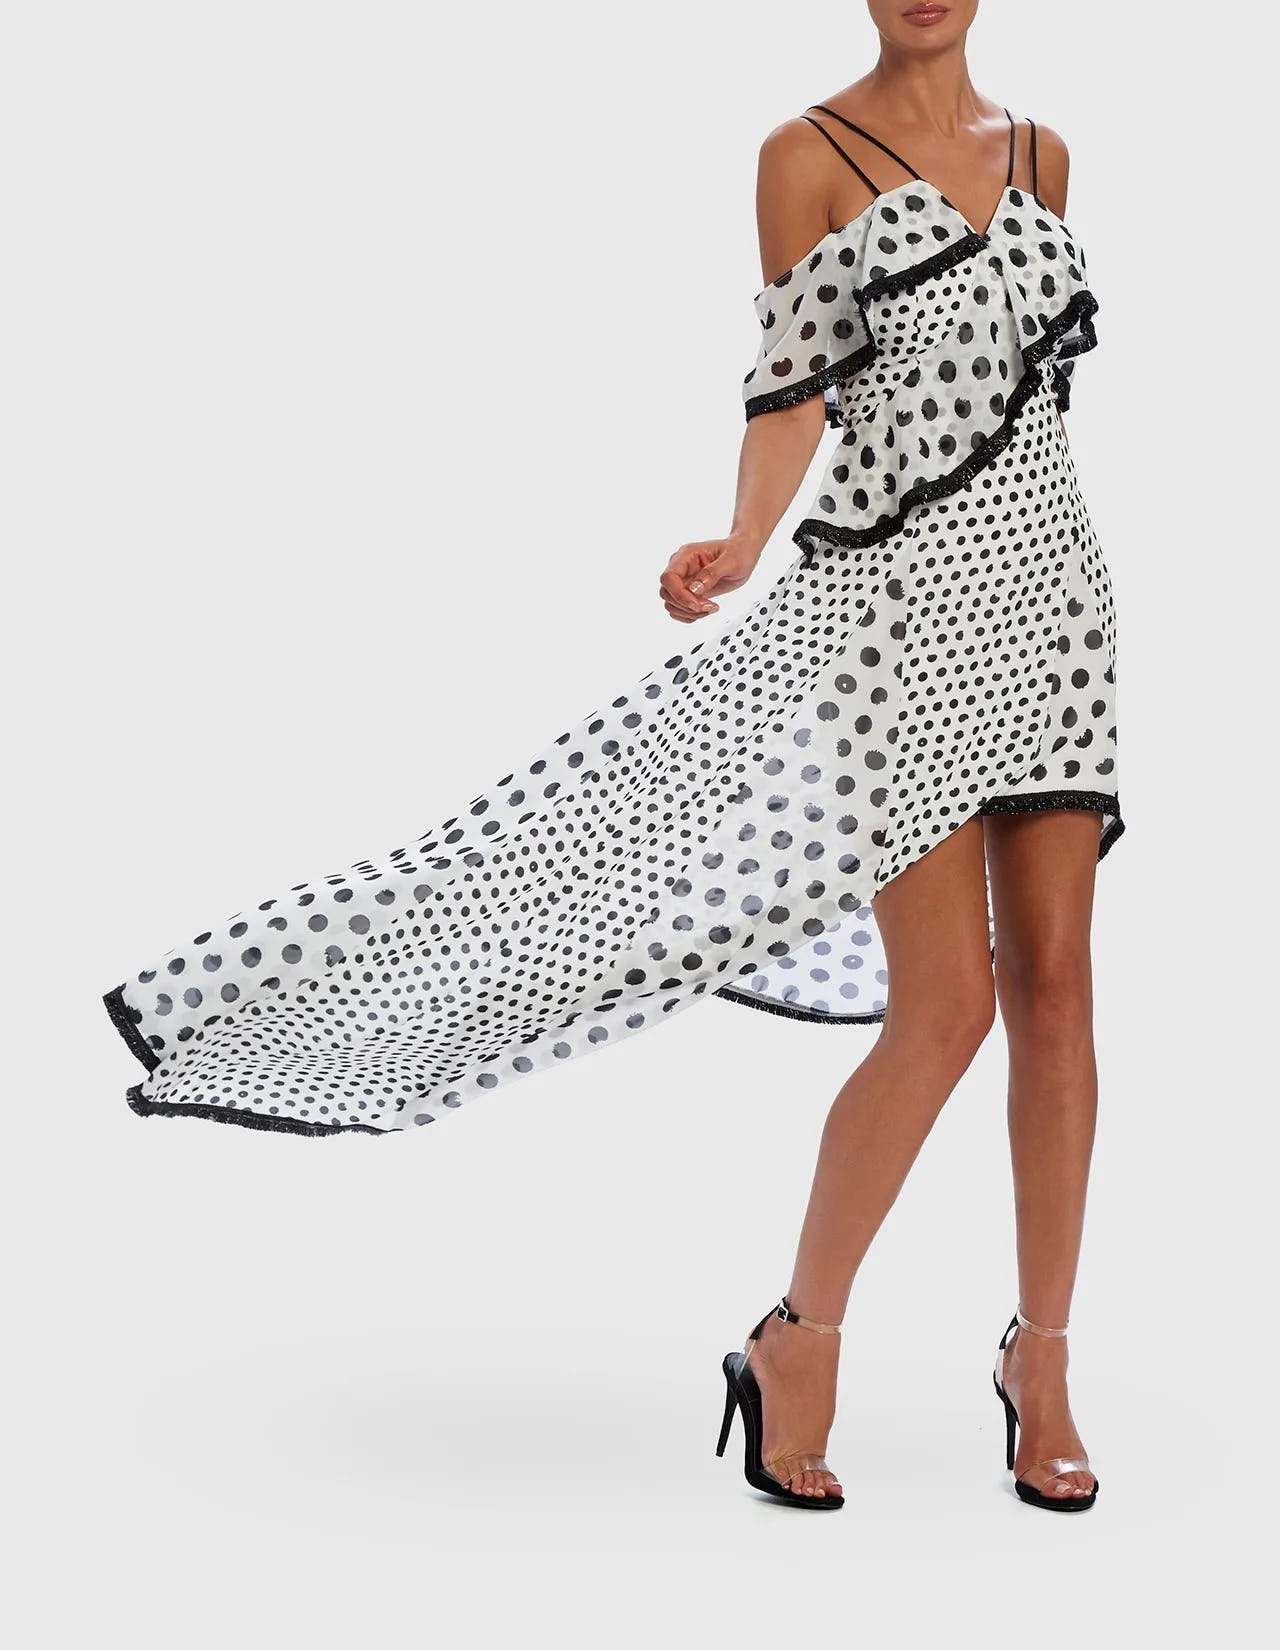 White And Black Polka Dot Cold Shoulder Ruffle Midi Dress Forever Unique,Lace Open Back Beach Wedding Dresses